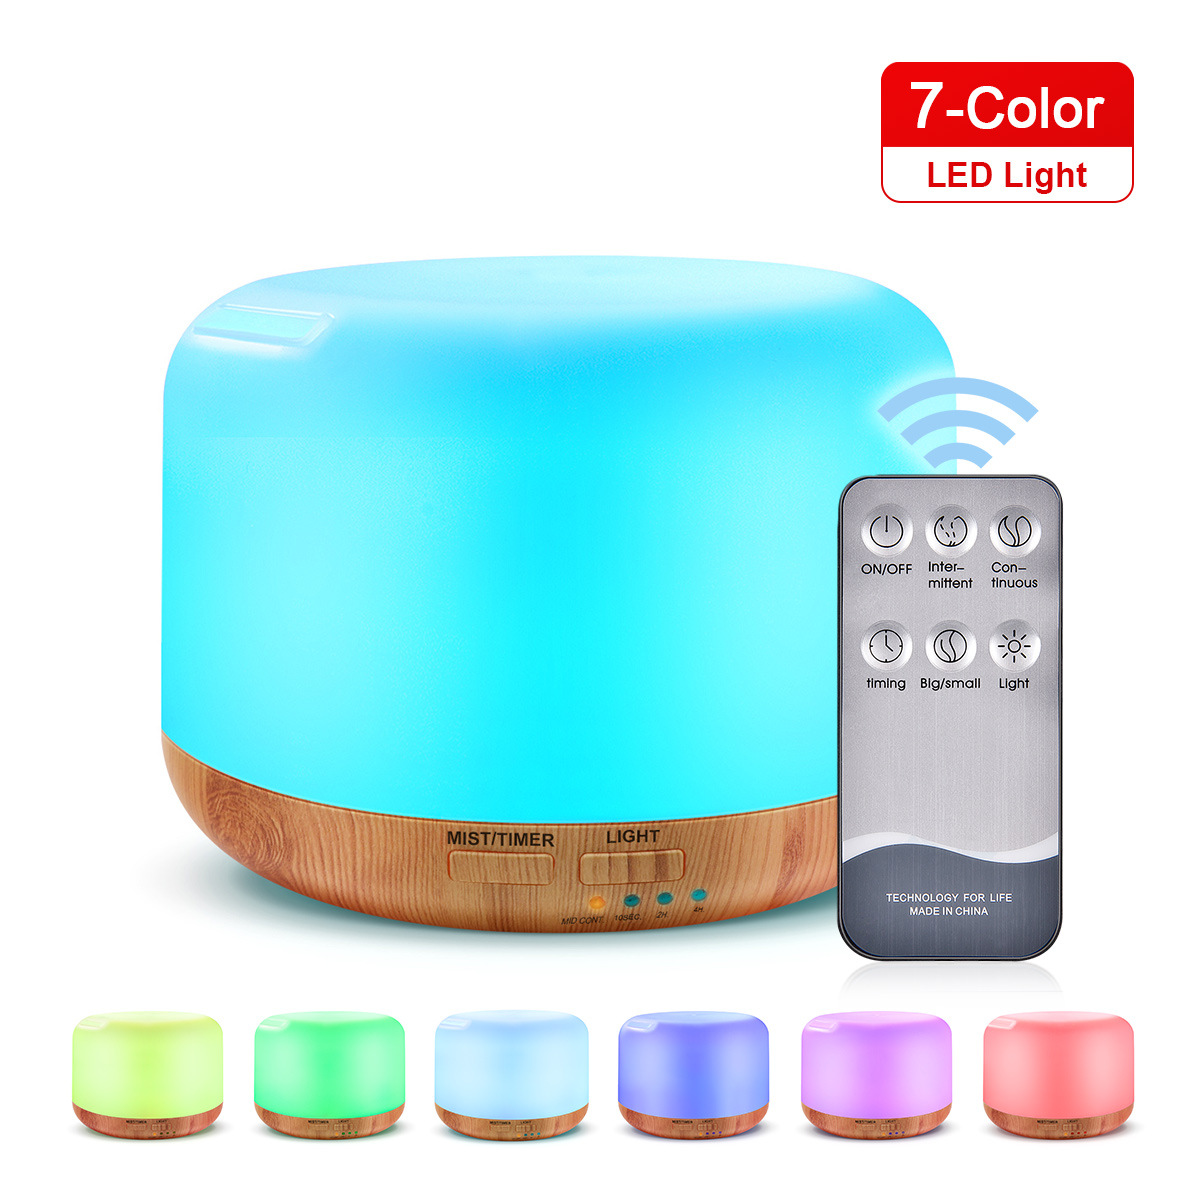 300ml Remote Control Wood Grain Household Fragrance Lamp Ultrasonic Mute Humidifier Light wood grain remote control_UK Plug